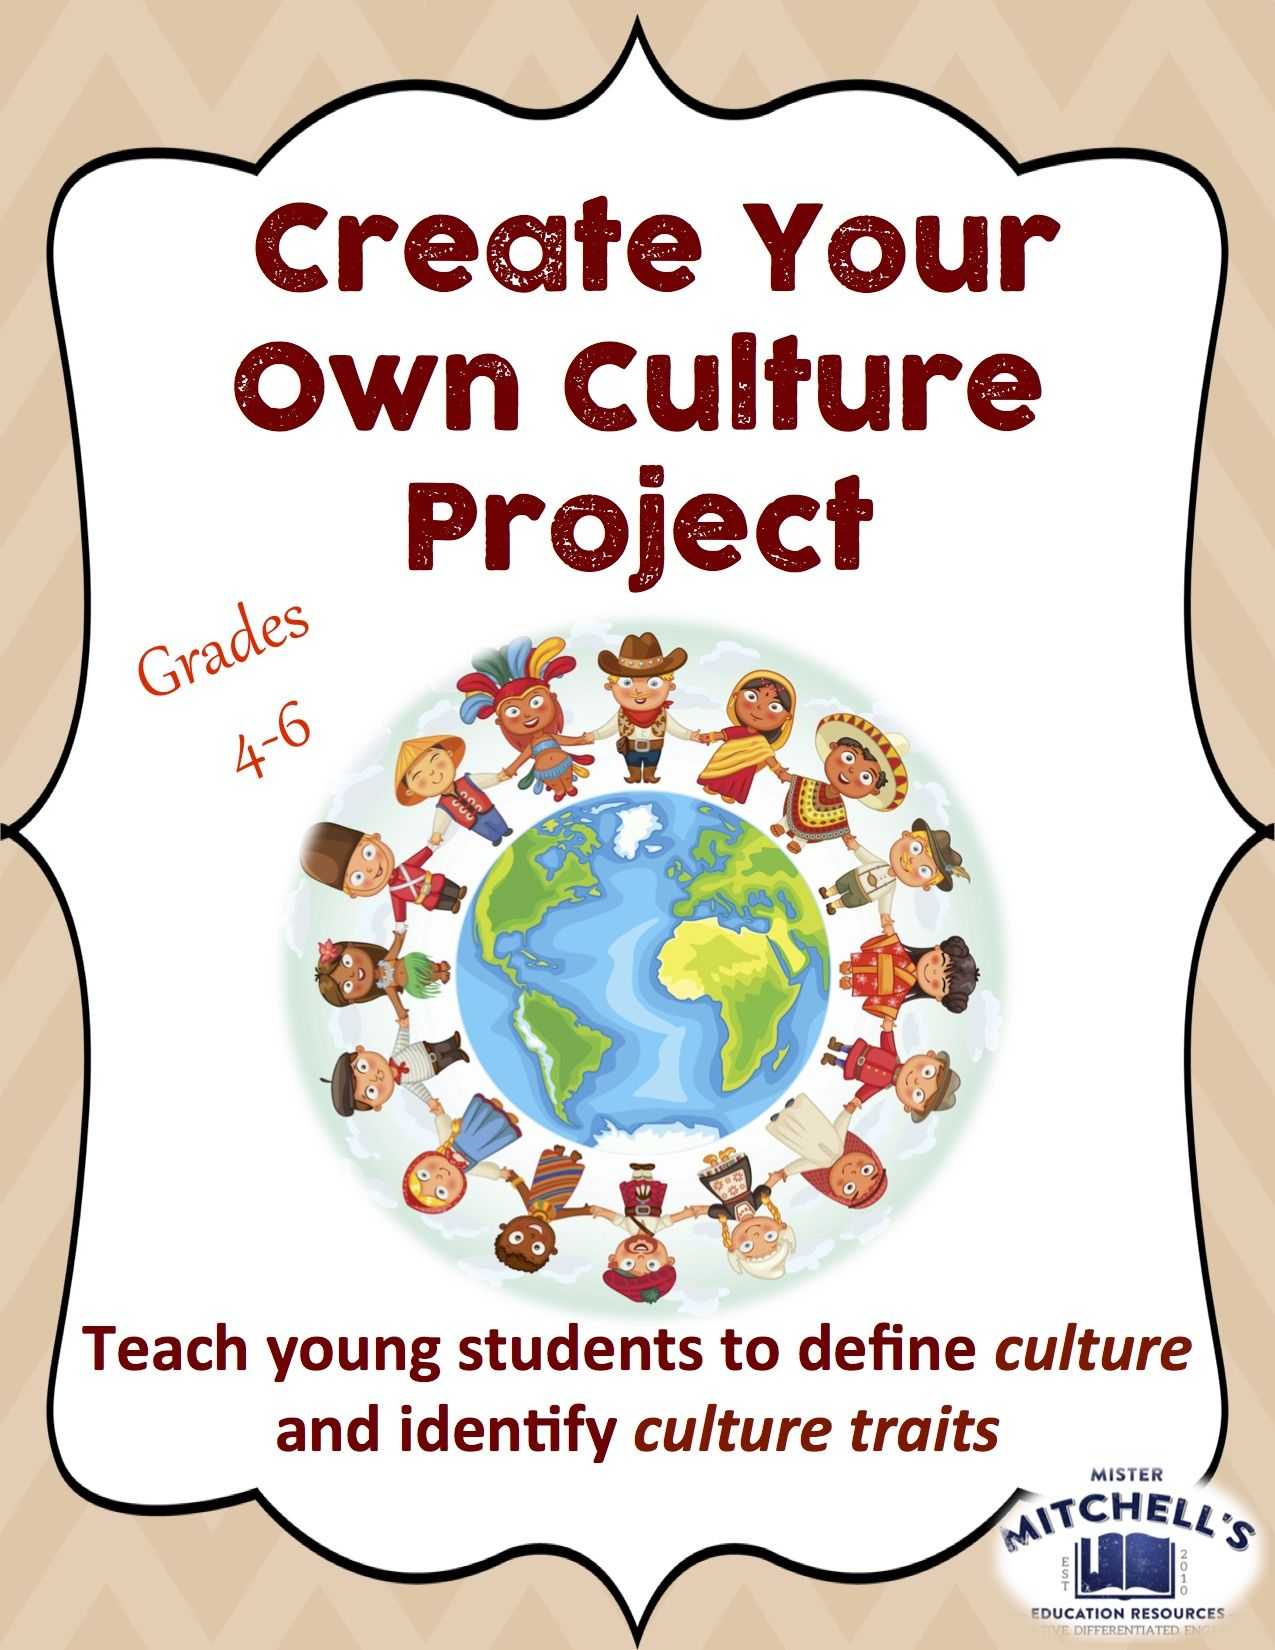 The Create Your Own Culture Hands On Learning Project